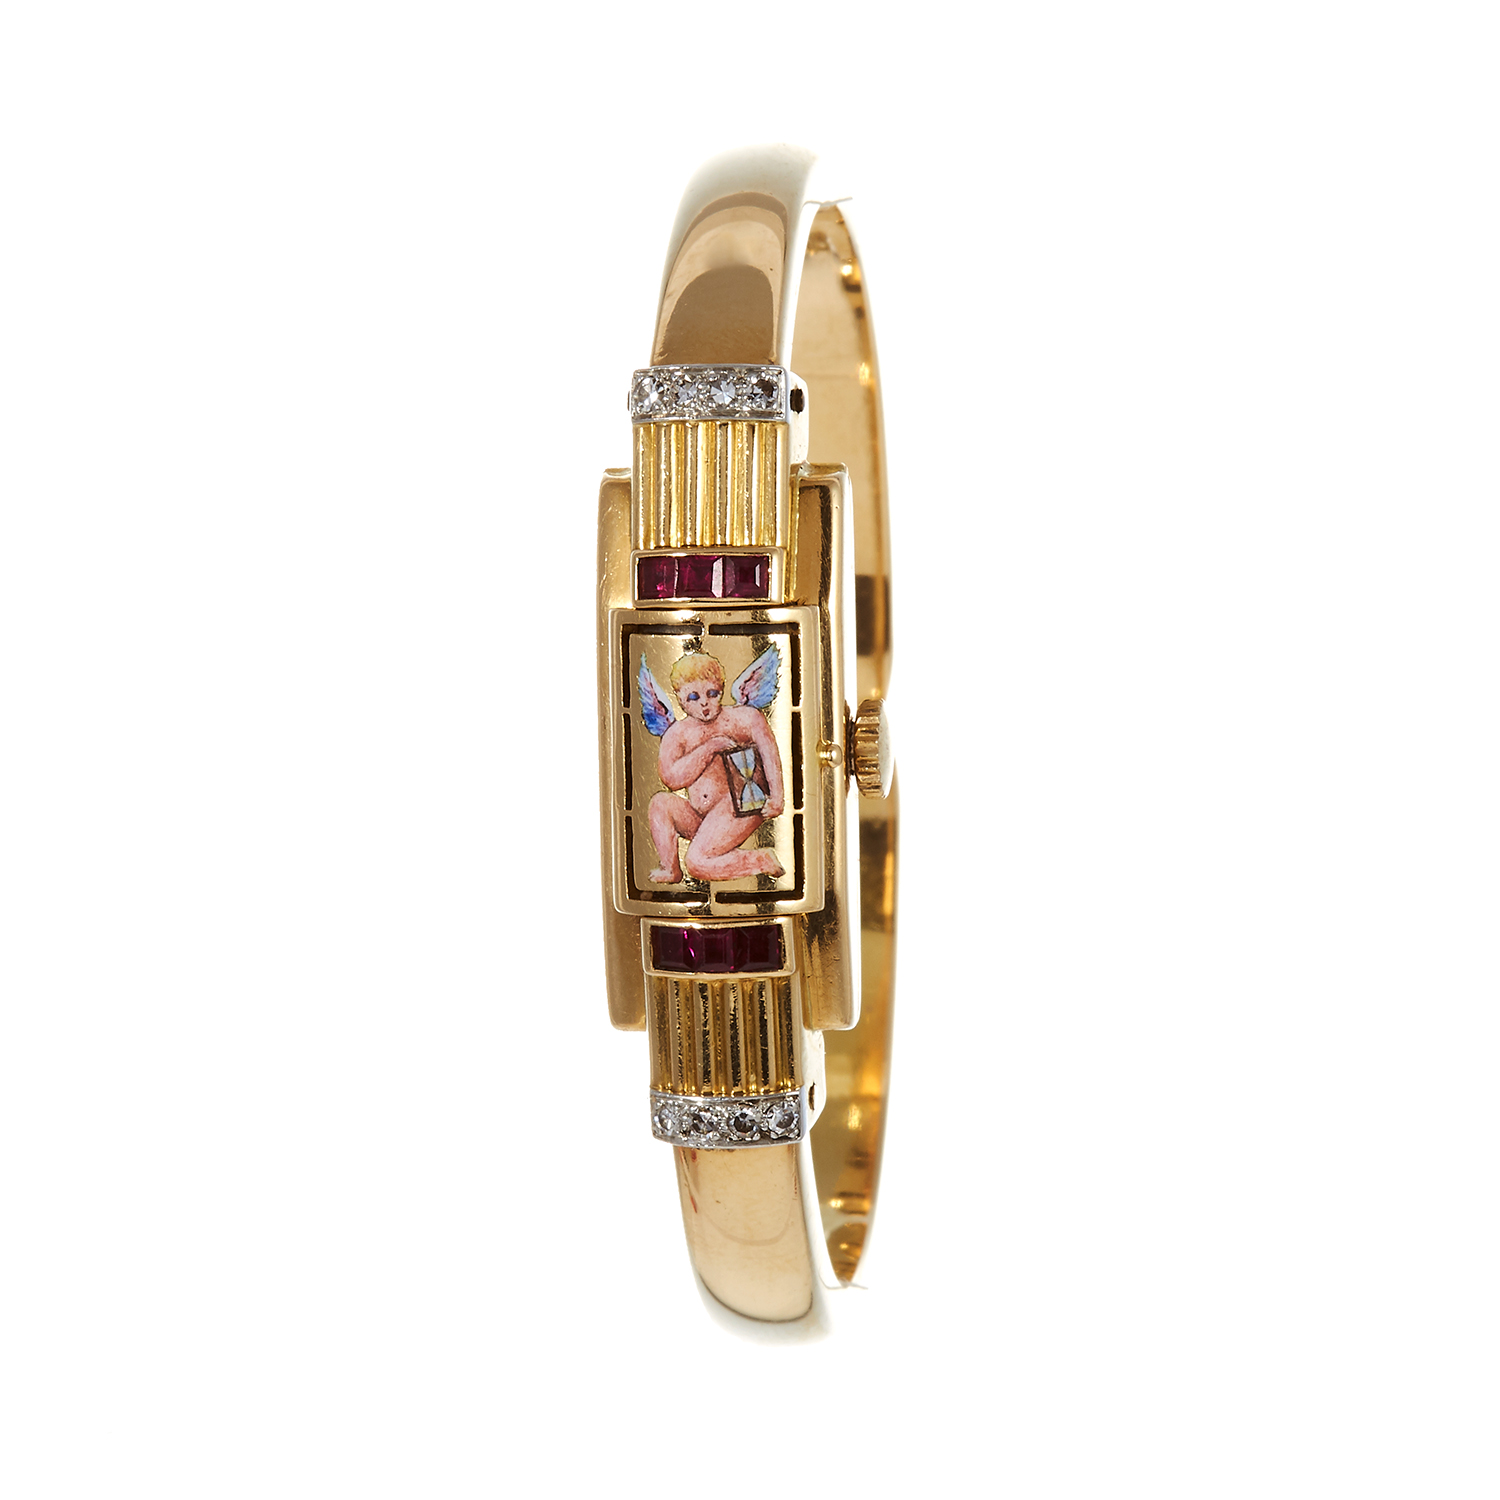 Los 470 - A RUBY, DIAMOND AND ENAMEL COCKTAIL WATCH in 18ct yellow gold the dial with a hinged, enamelled